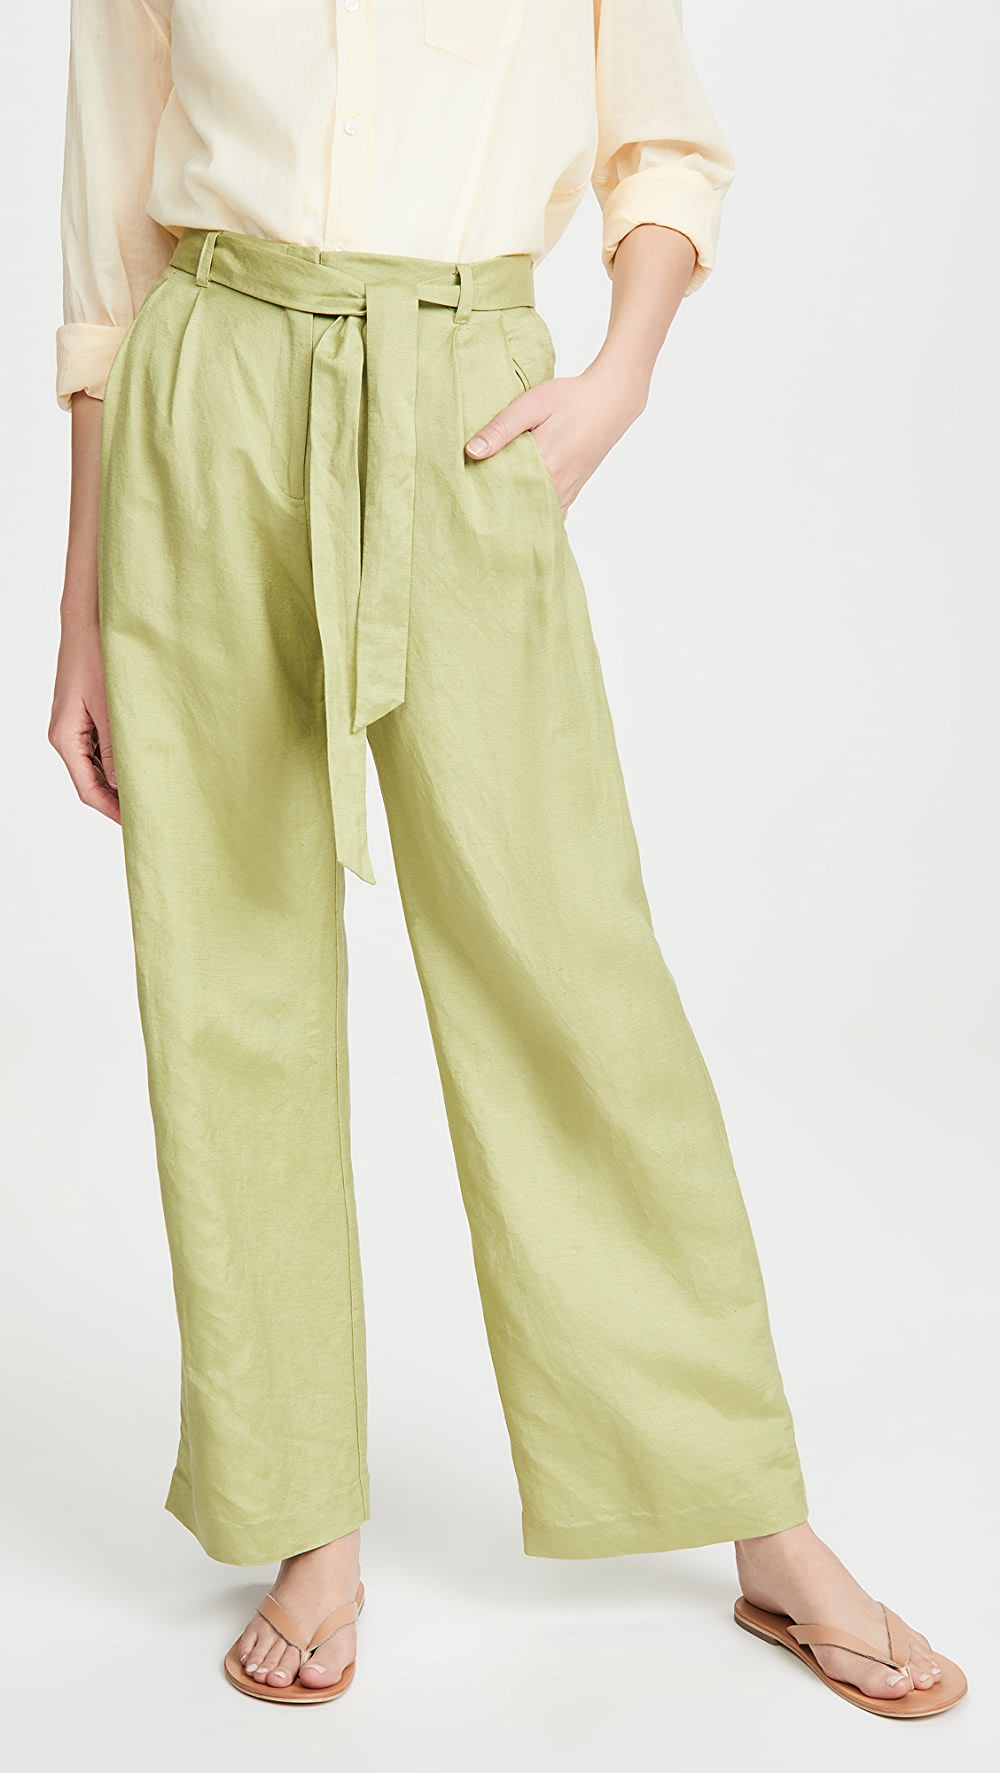 Alert Veda - Joaquin Linen Trousers Wide Selection;